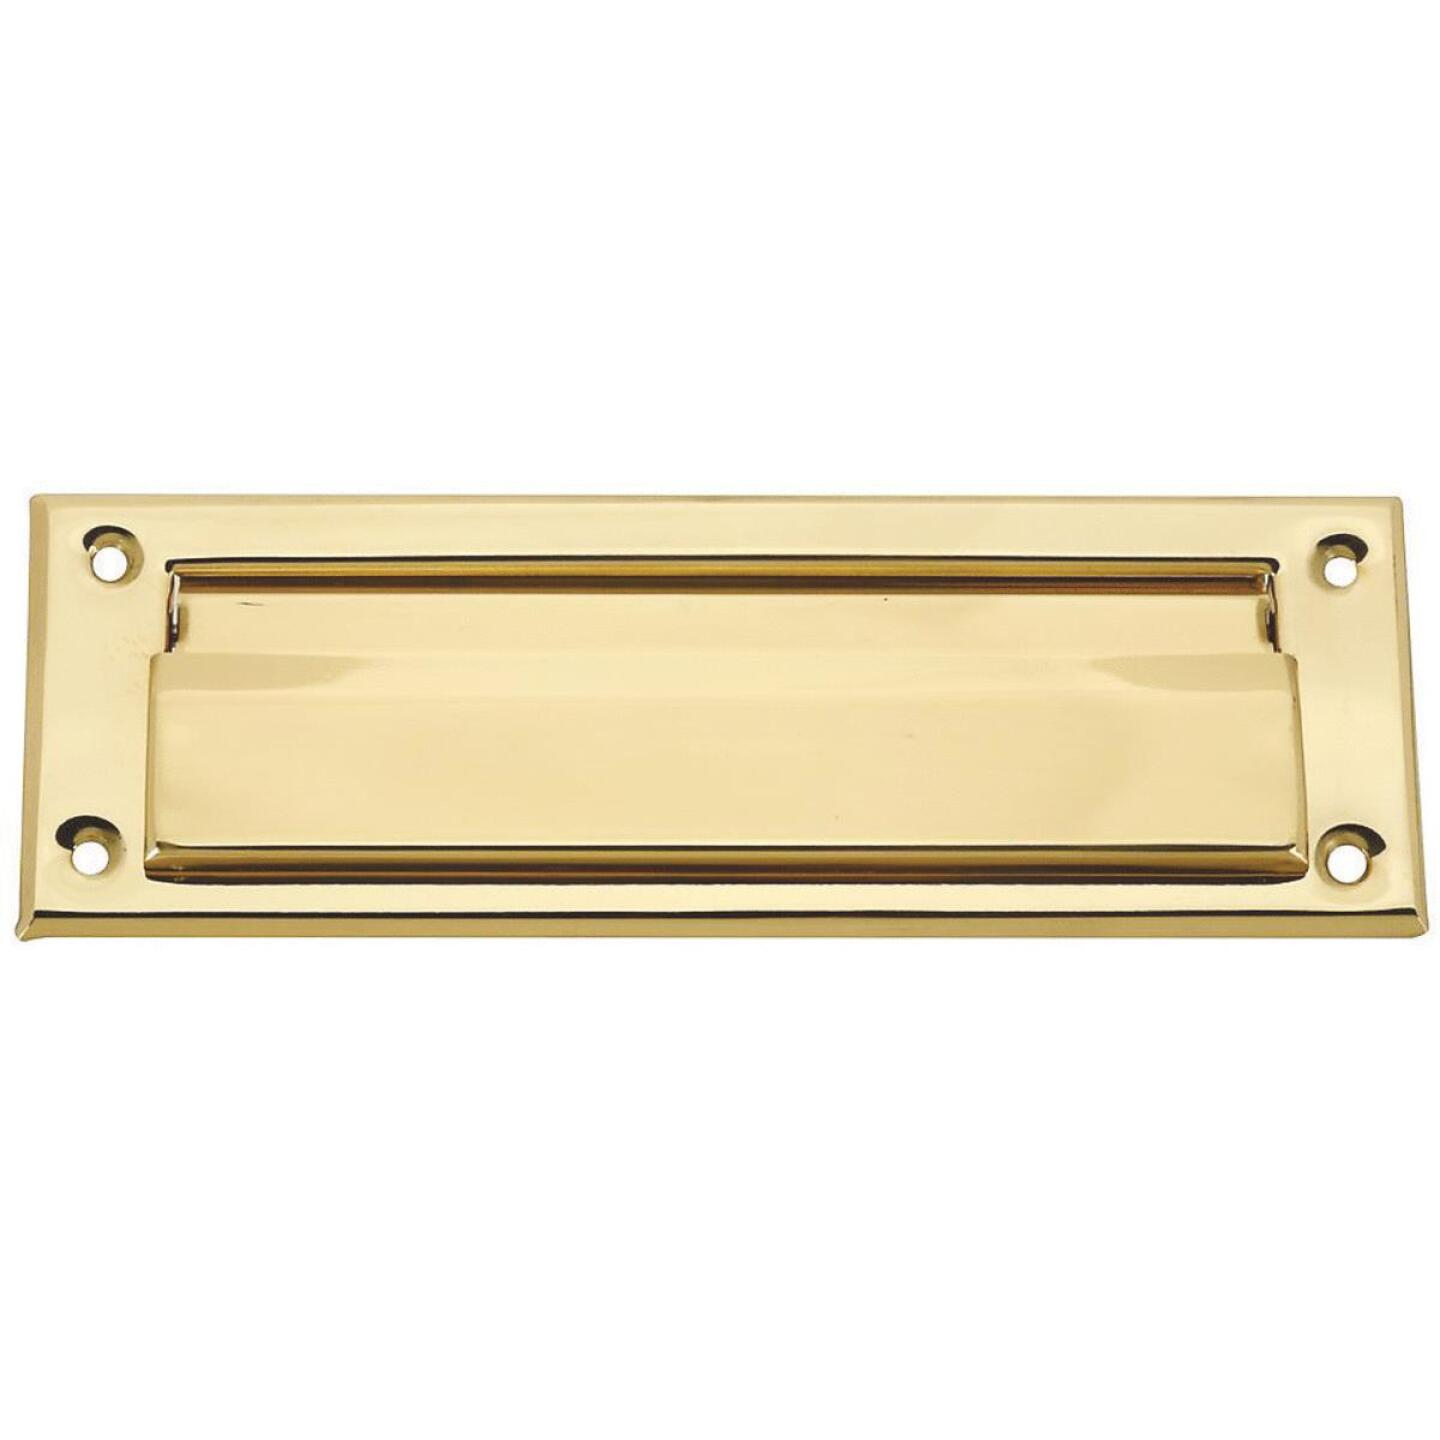 National 1-1/2 In. x 7 In. Polished Brass Mail Slot Image 1